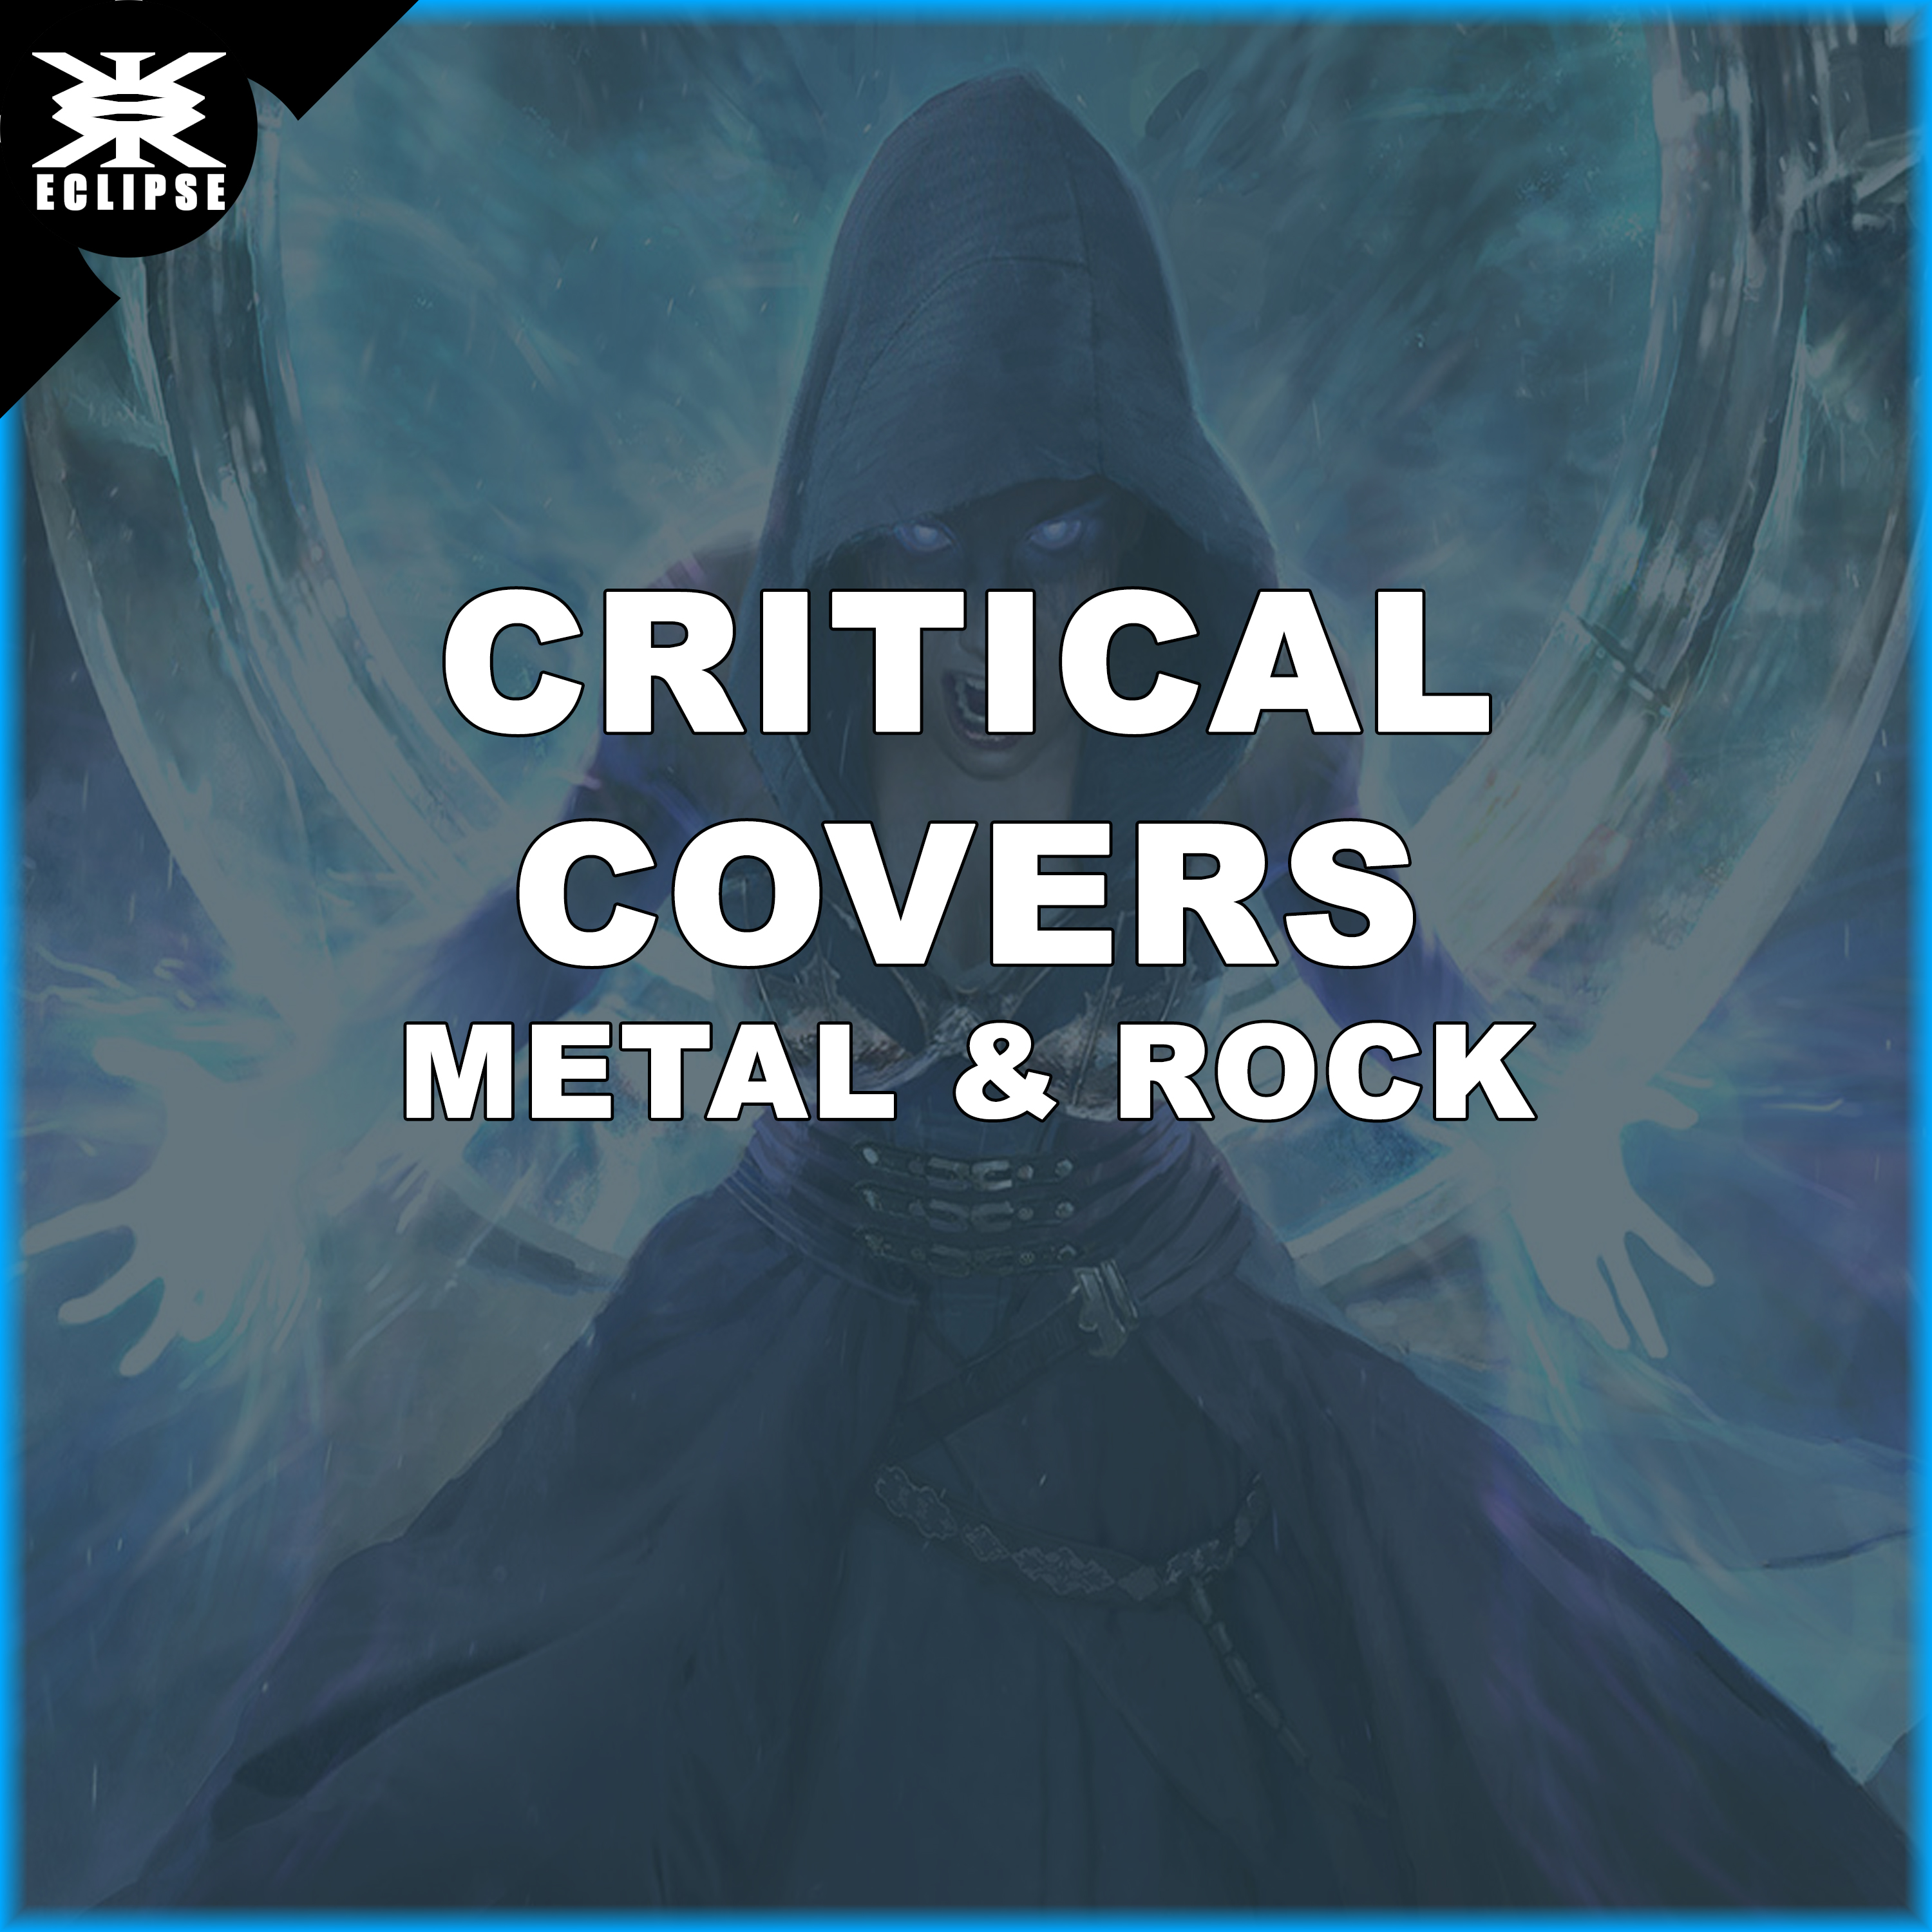 Rock Music Cover Critical Covers A Spotify Music Playlist Best Metal Cover Song